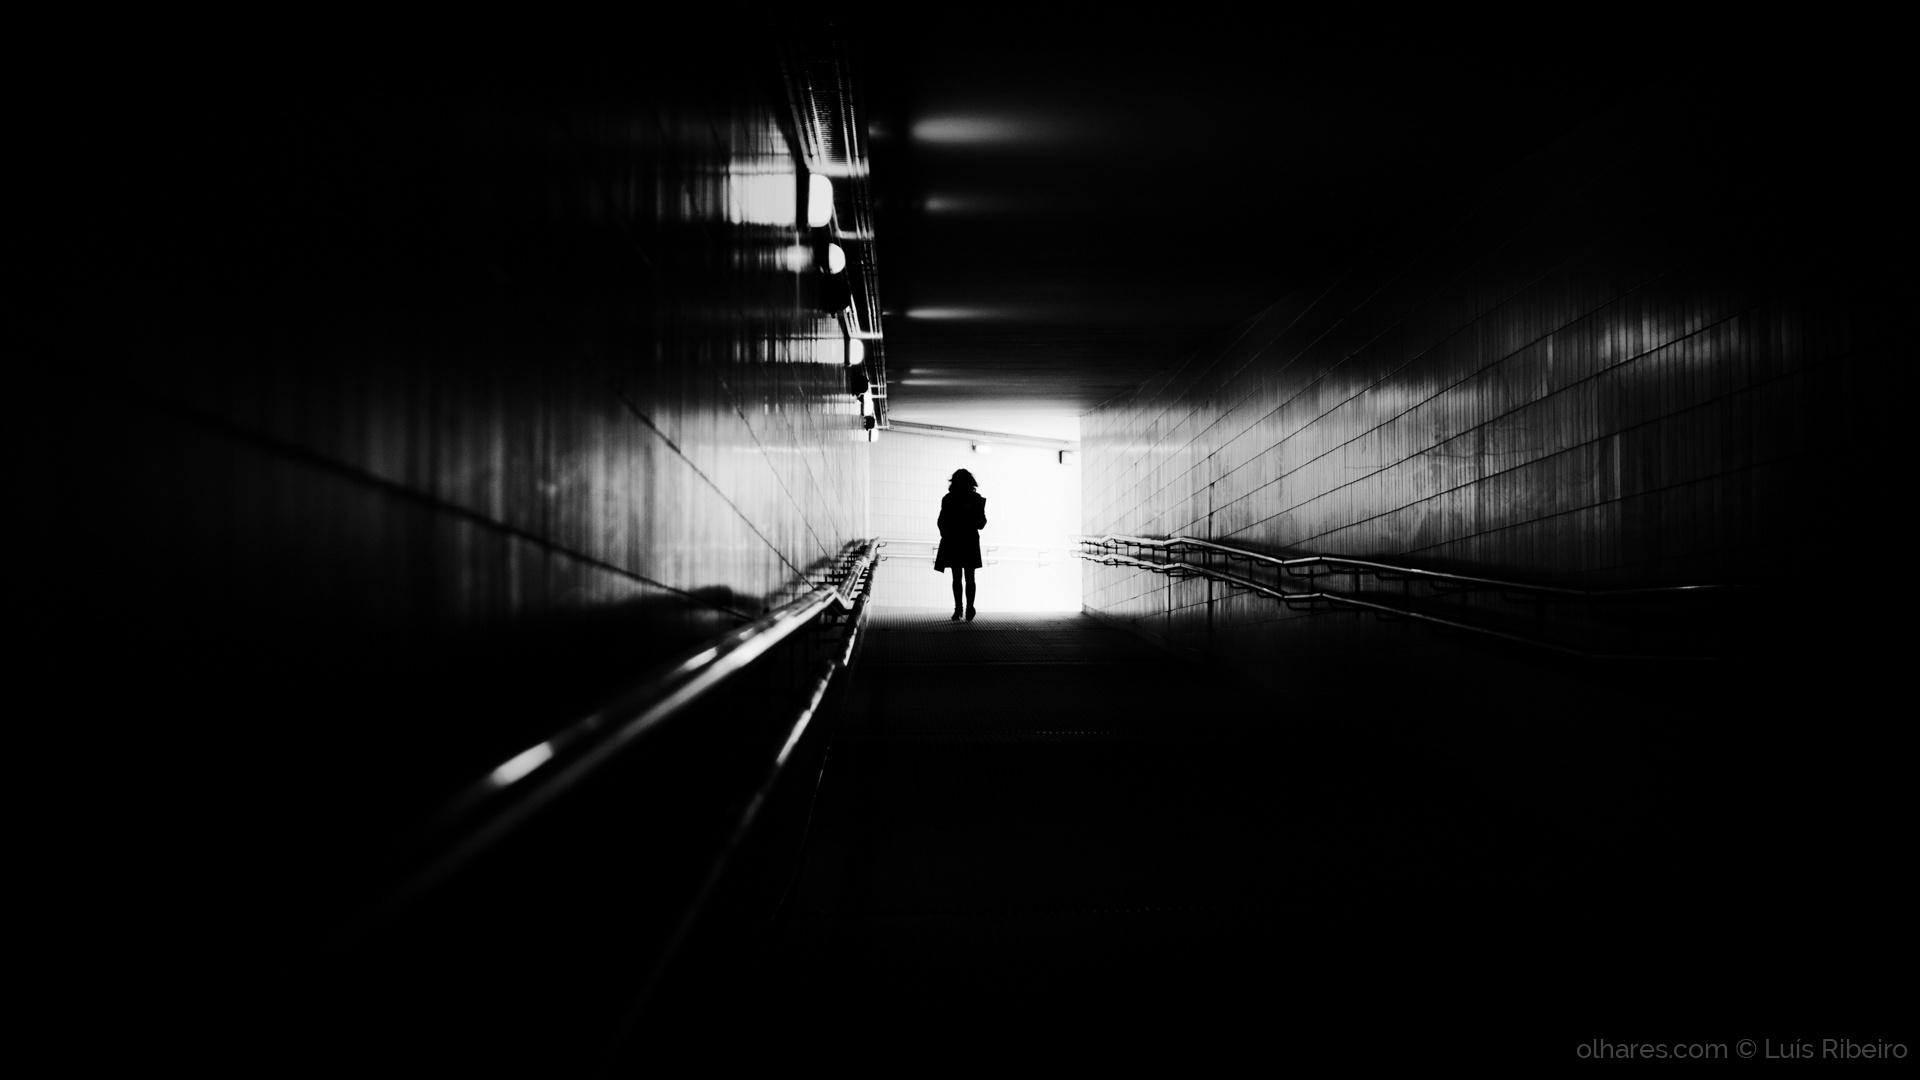 © Luís Ribeiro - Walking into darkness